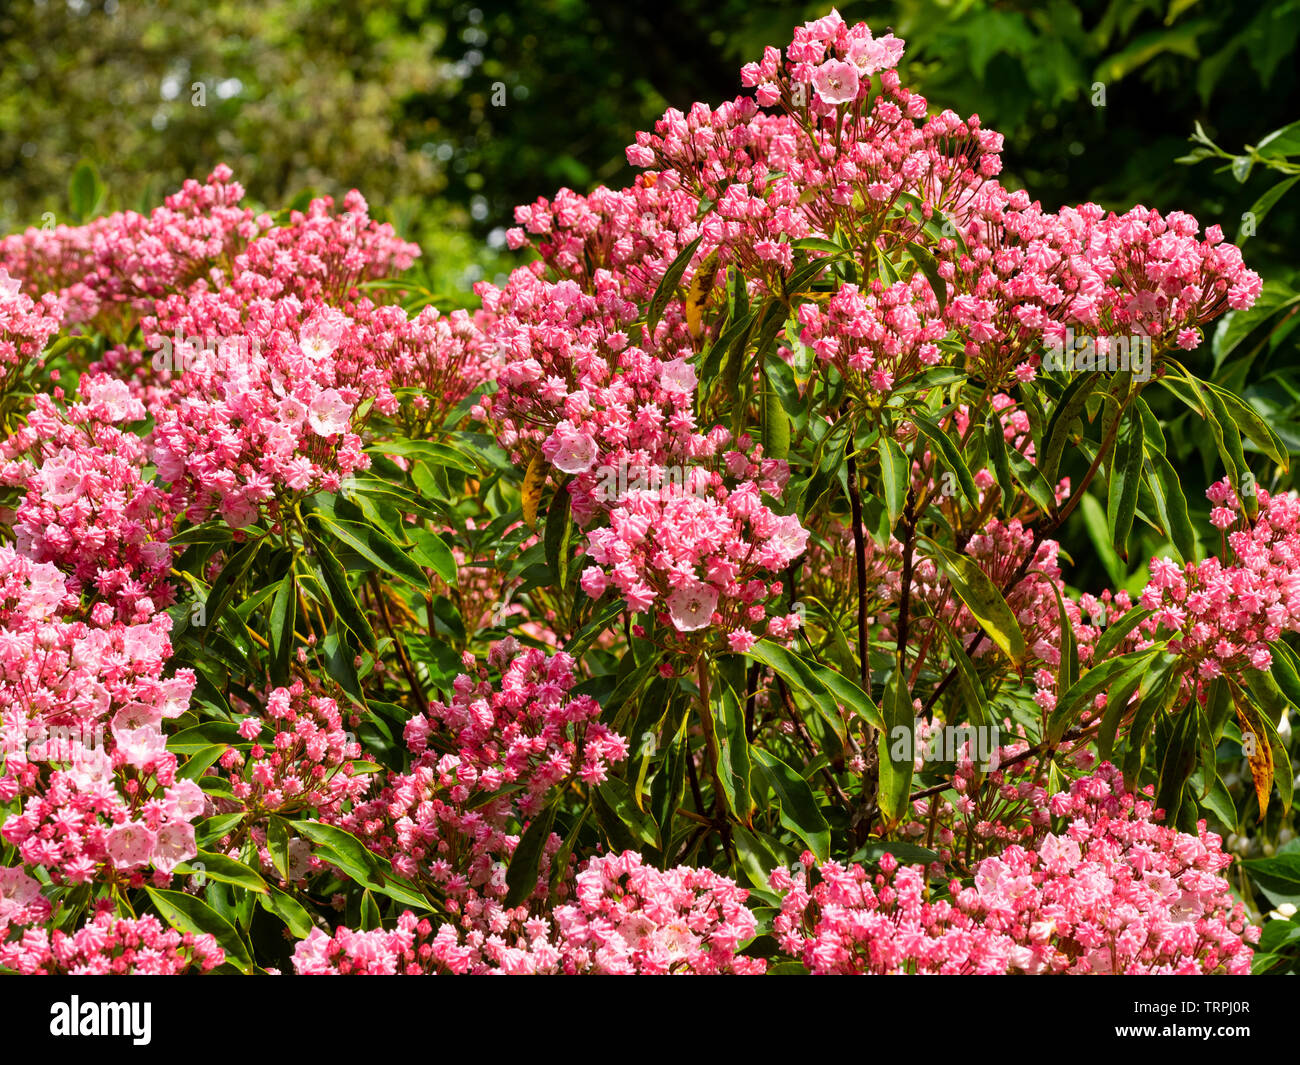 Pleated buds and opening flowers of the hardy evergreen mountain laurel, Kalmia latifolia - Stock Image